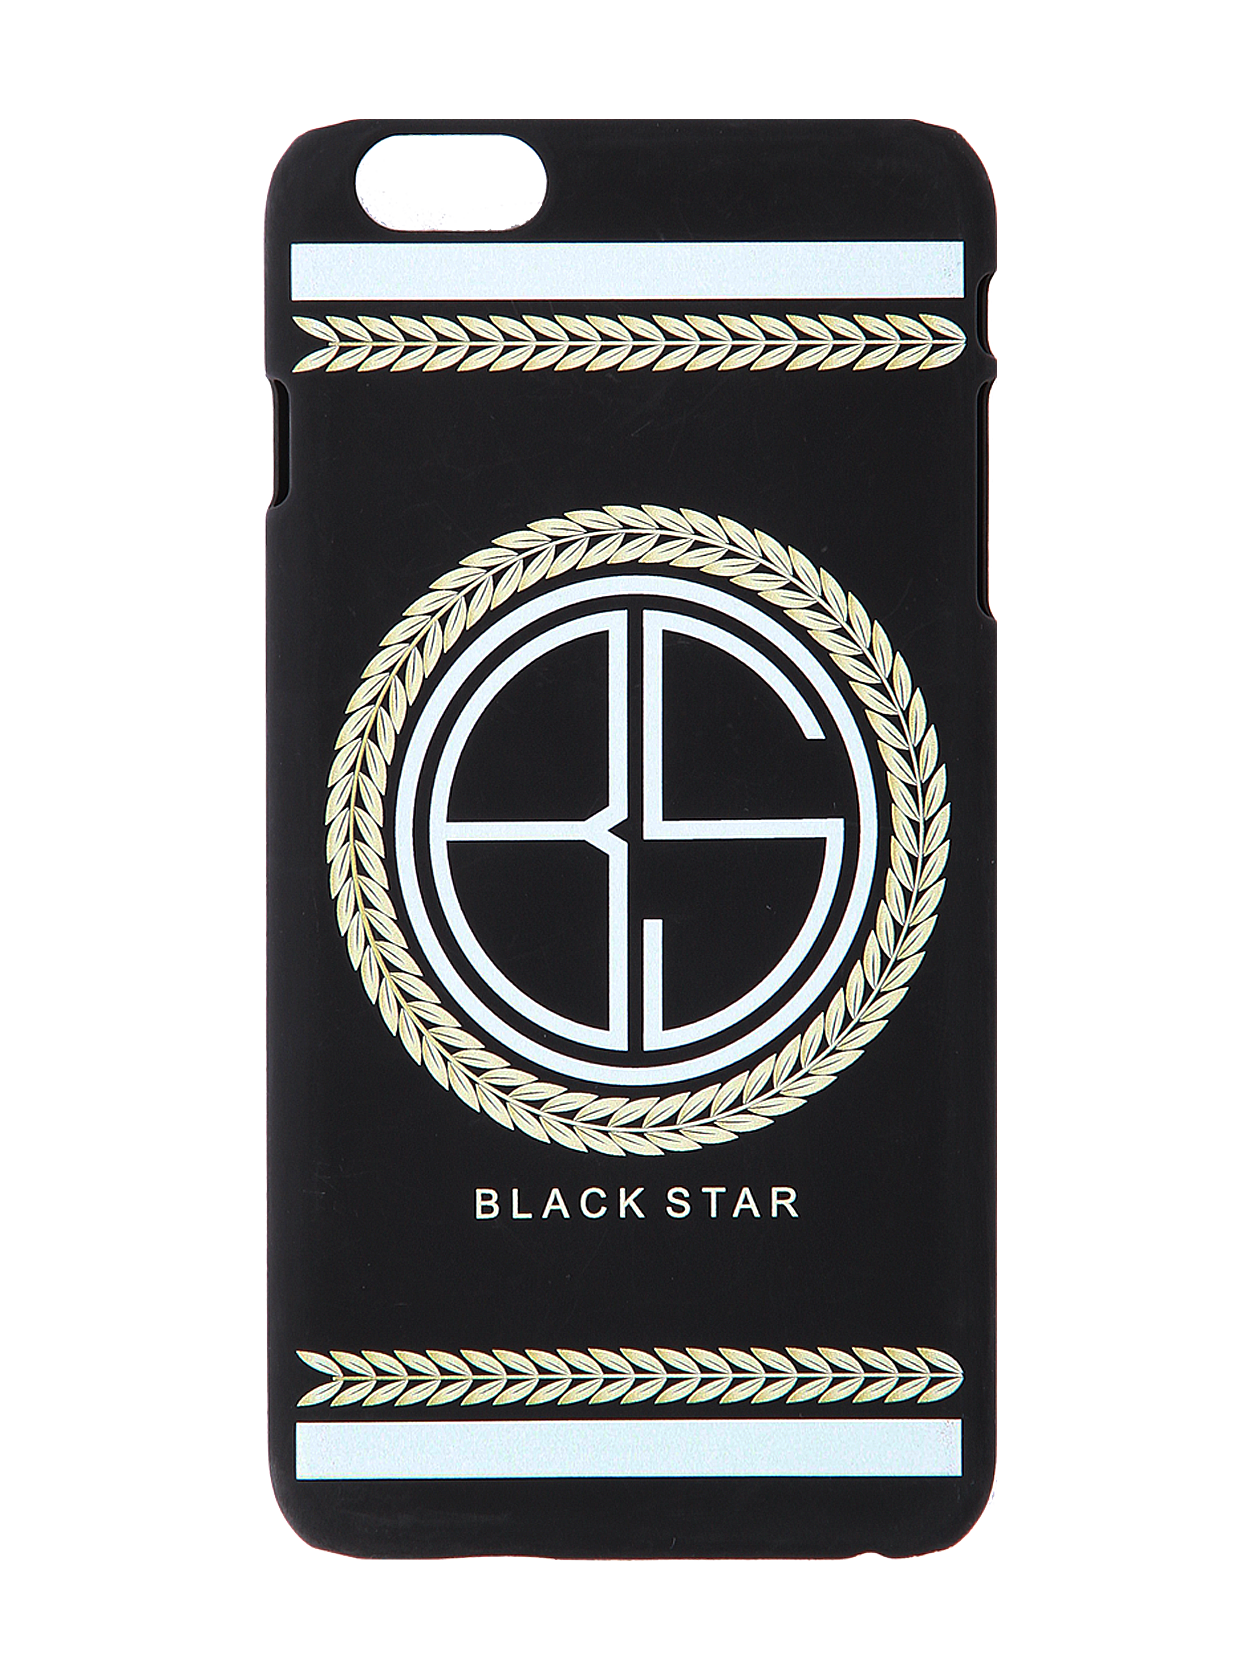 Case for iPhone 5/5s/6/6+ Wreath Logo